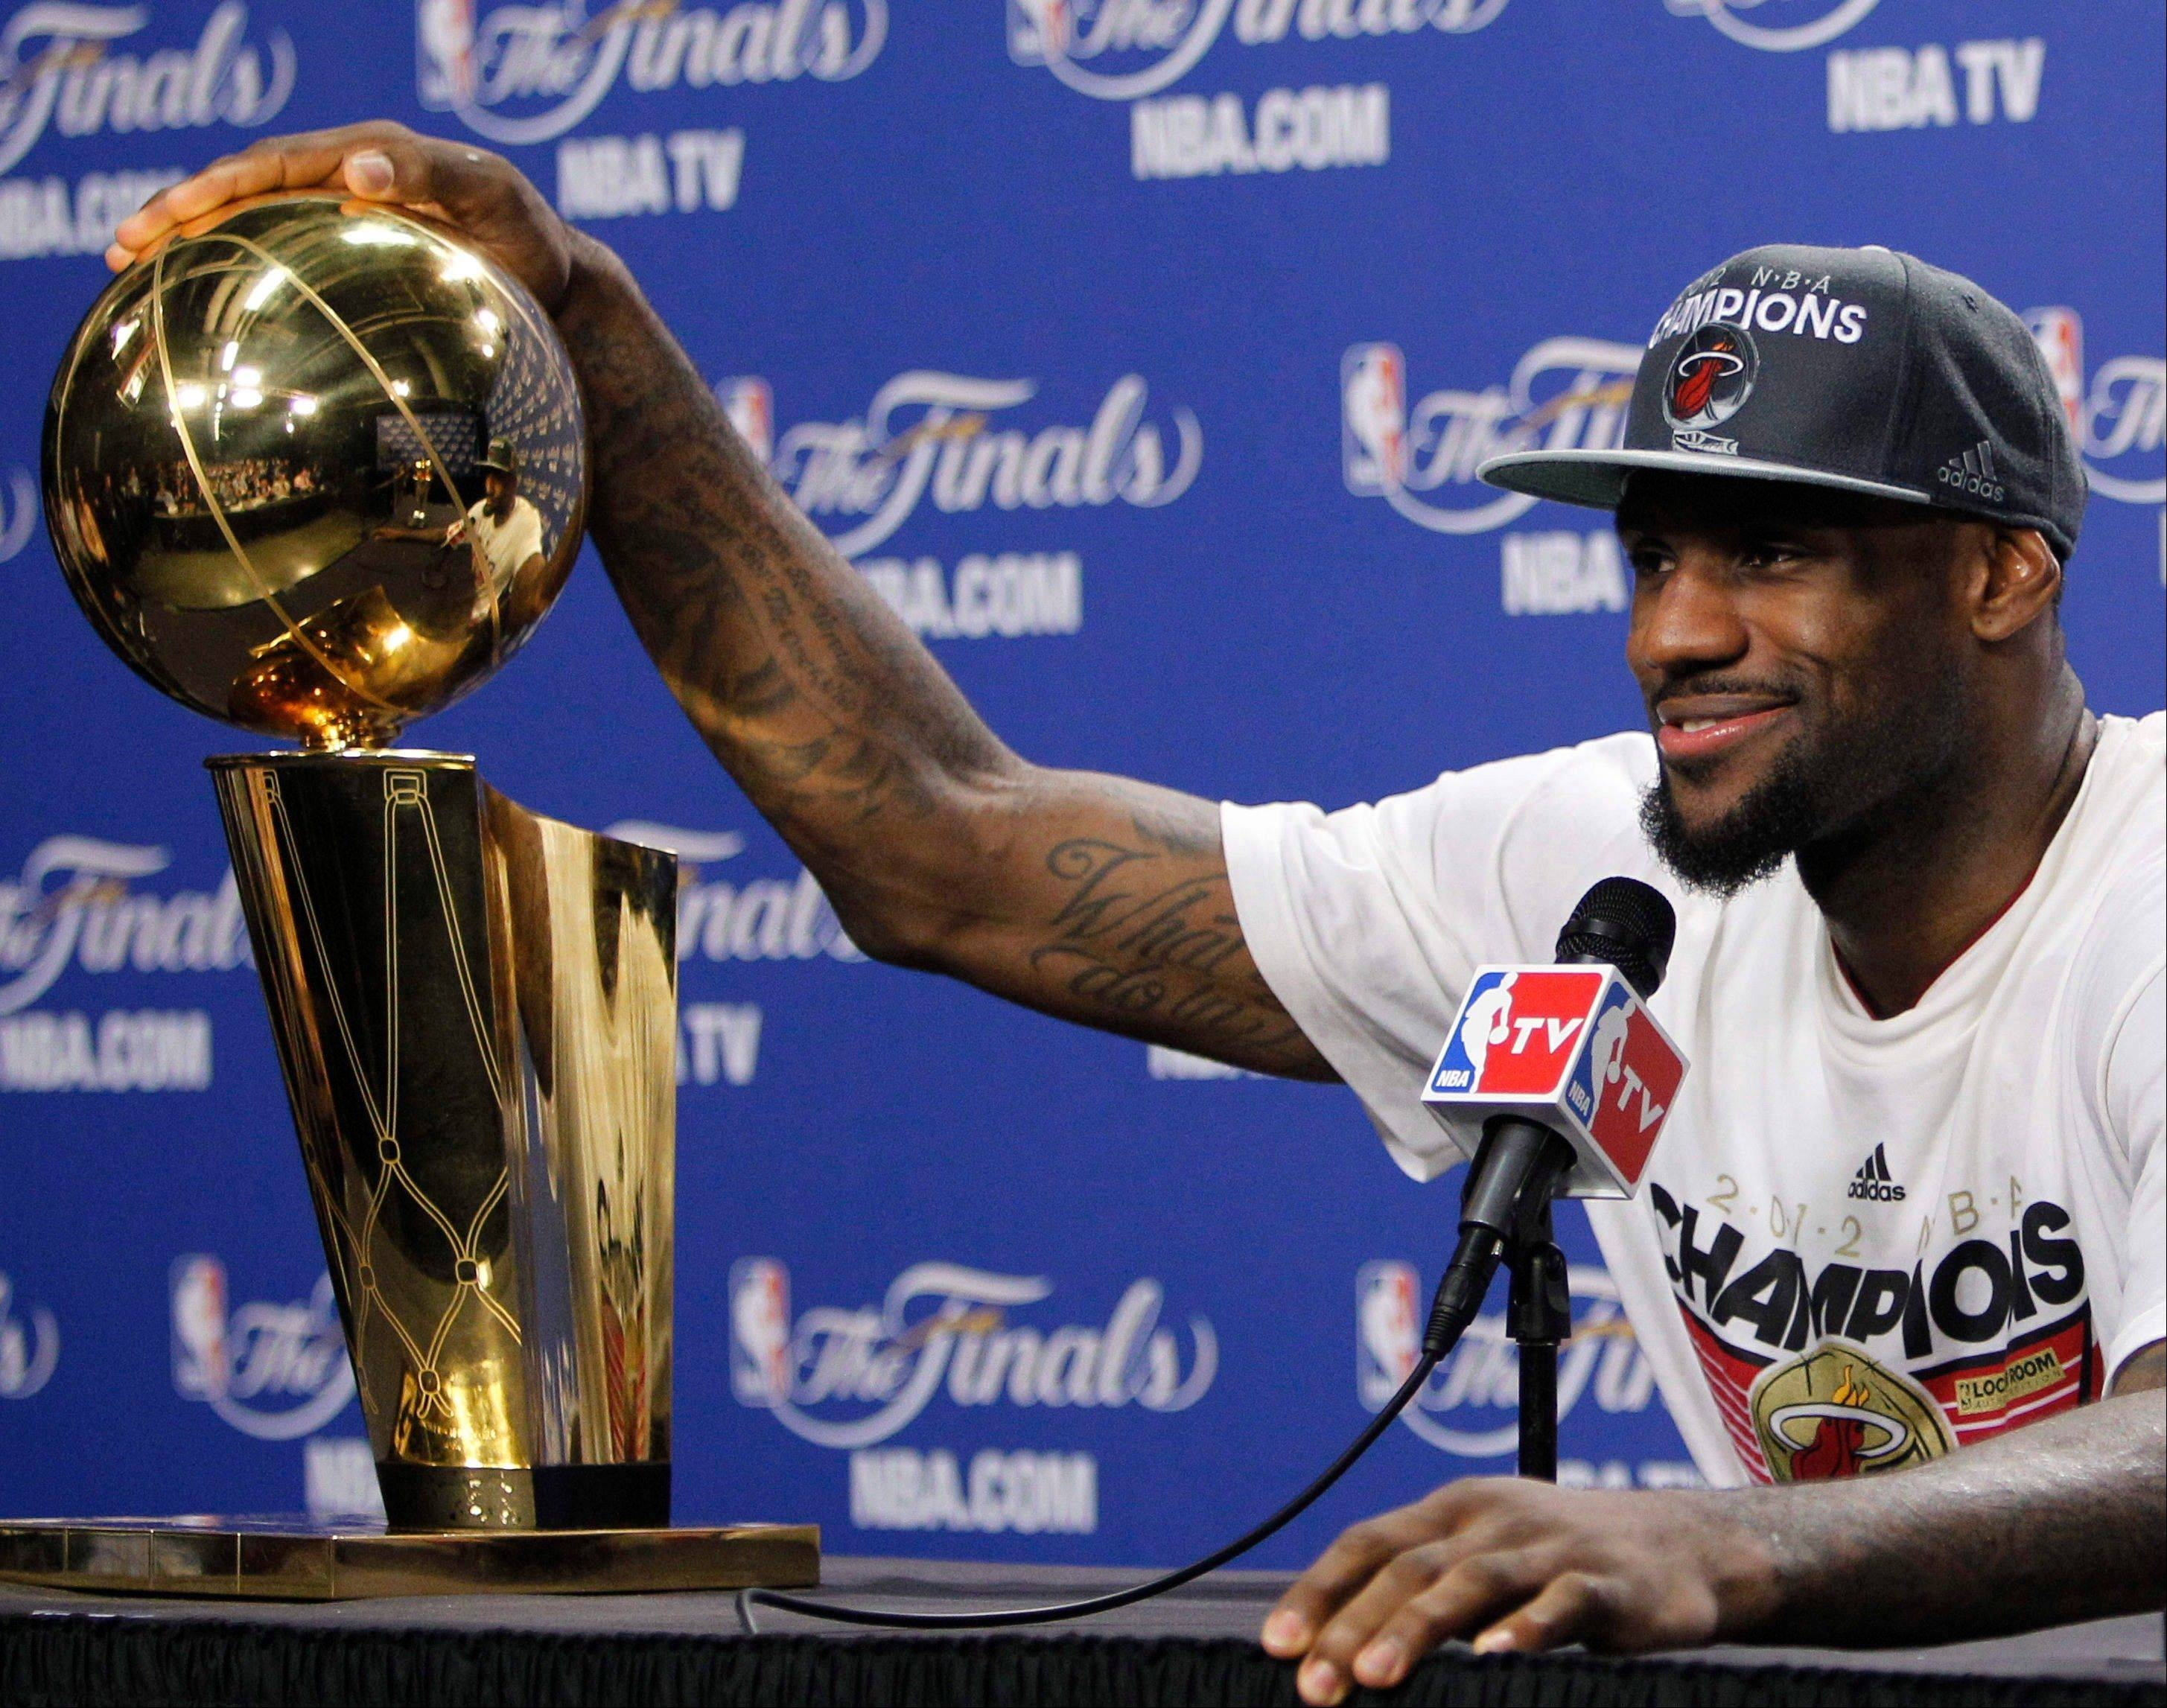 Miami's LeBron James now has an NBA Championship Trophy to go with his MVP hardware. Daily Herald NBA writer Mike McGraw says time, not another title, will help change LeBron's images as a player some fans love to hate.